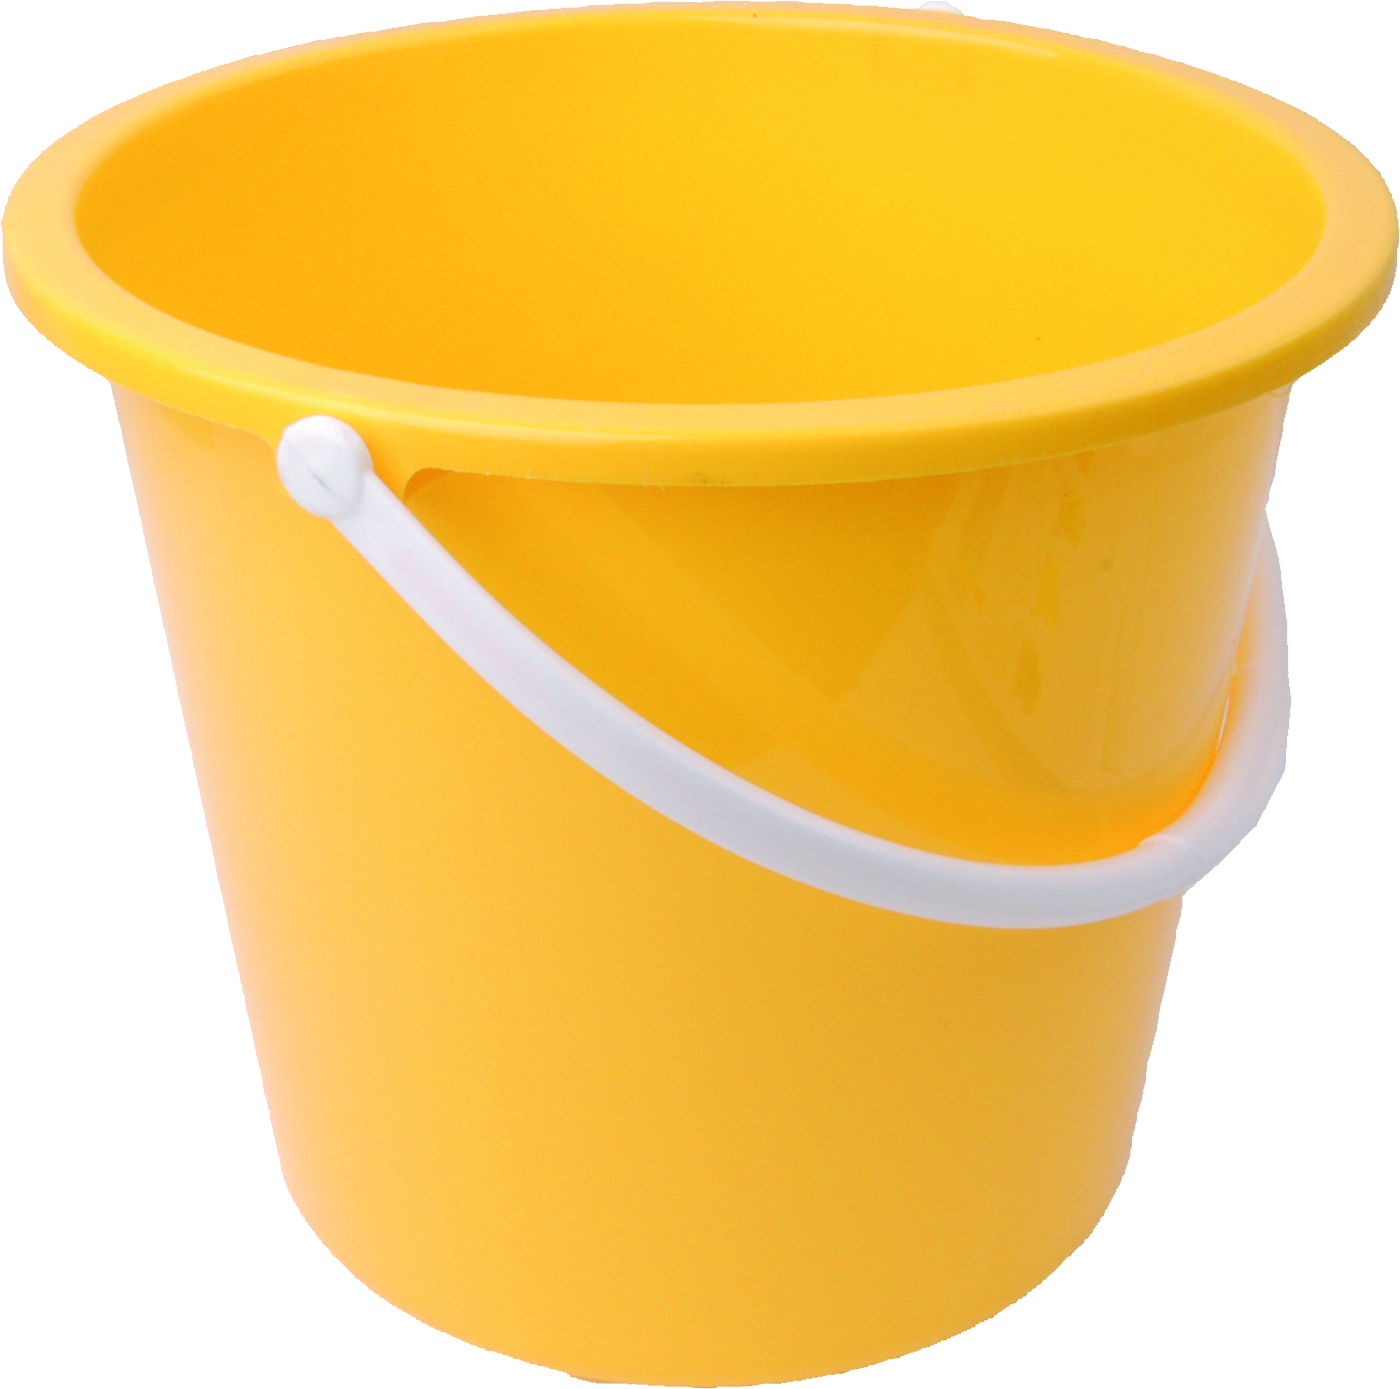 Water clipart bucket. Yellow plastic png image